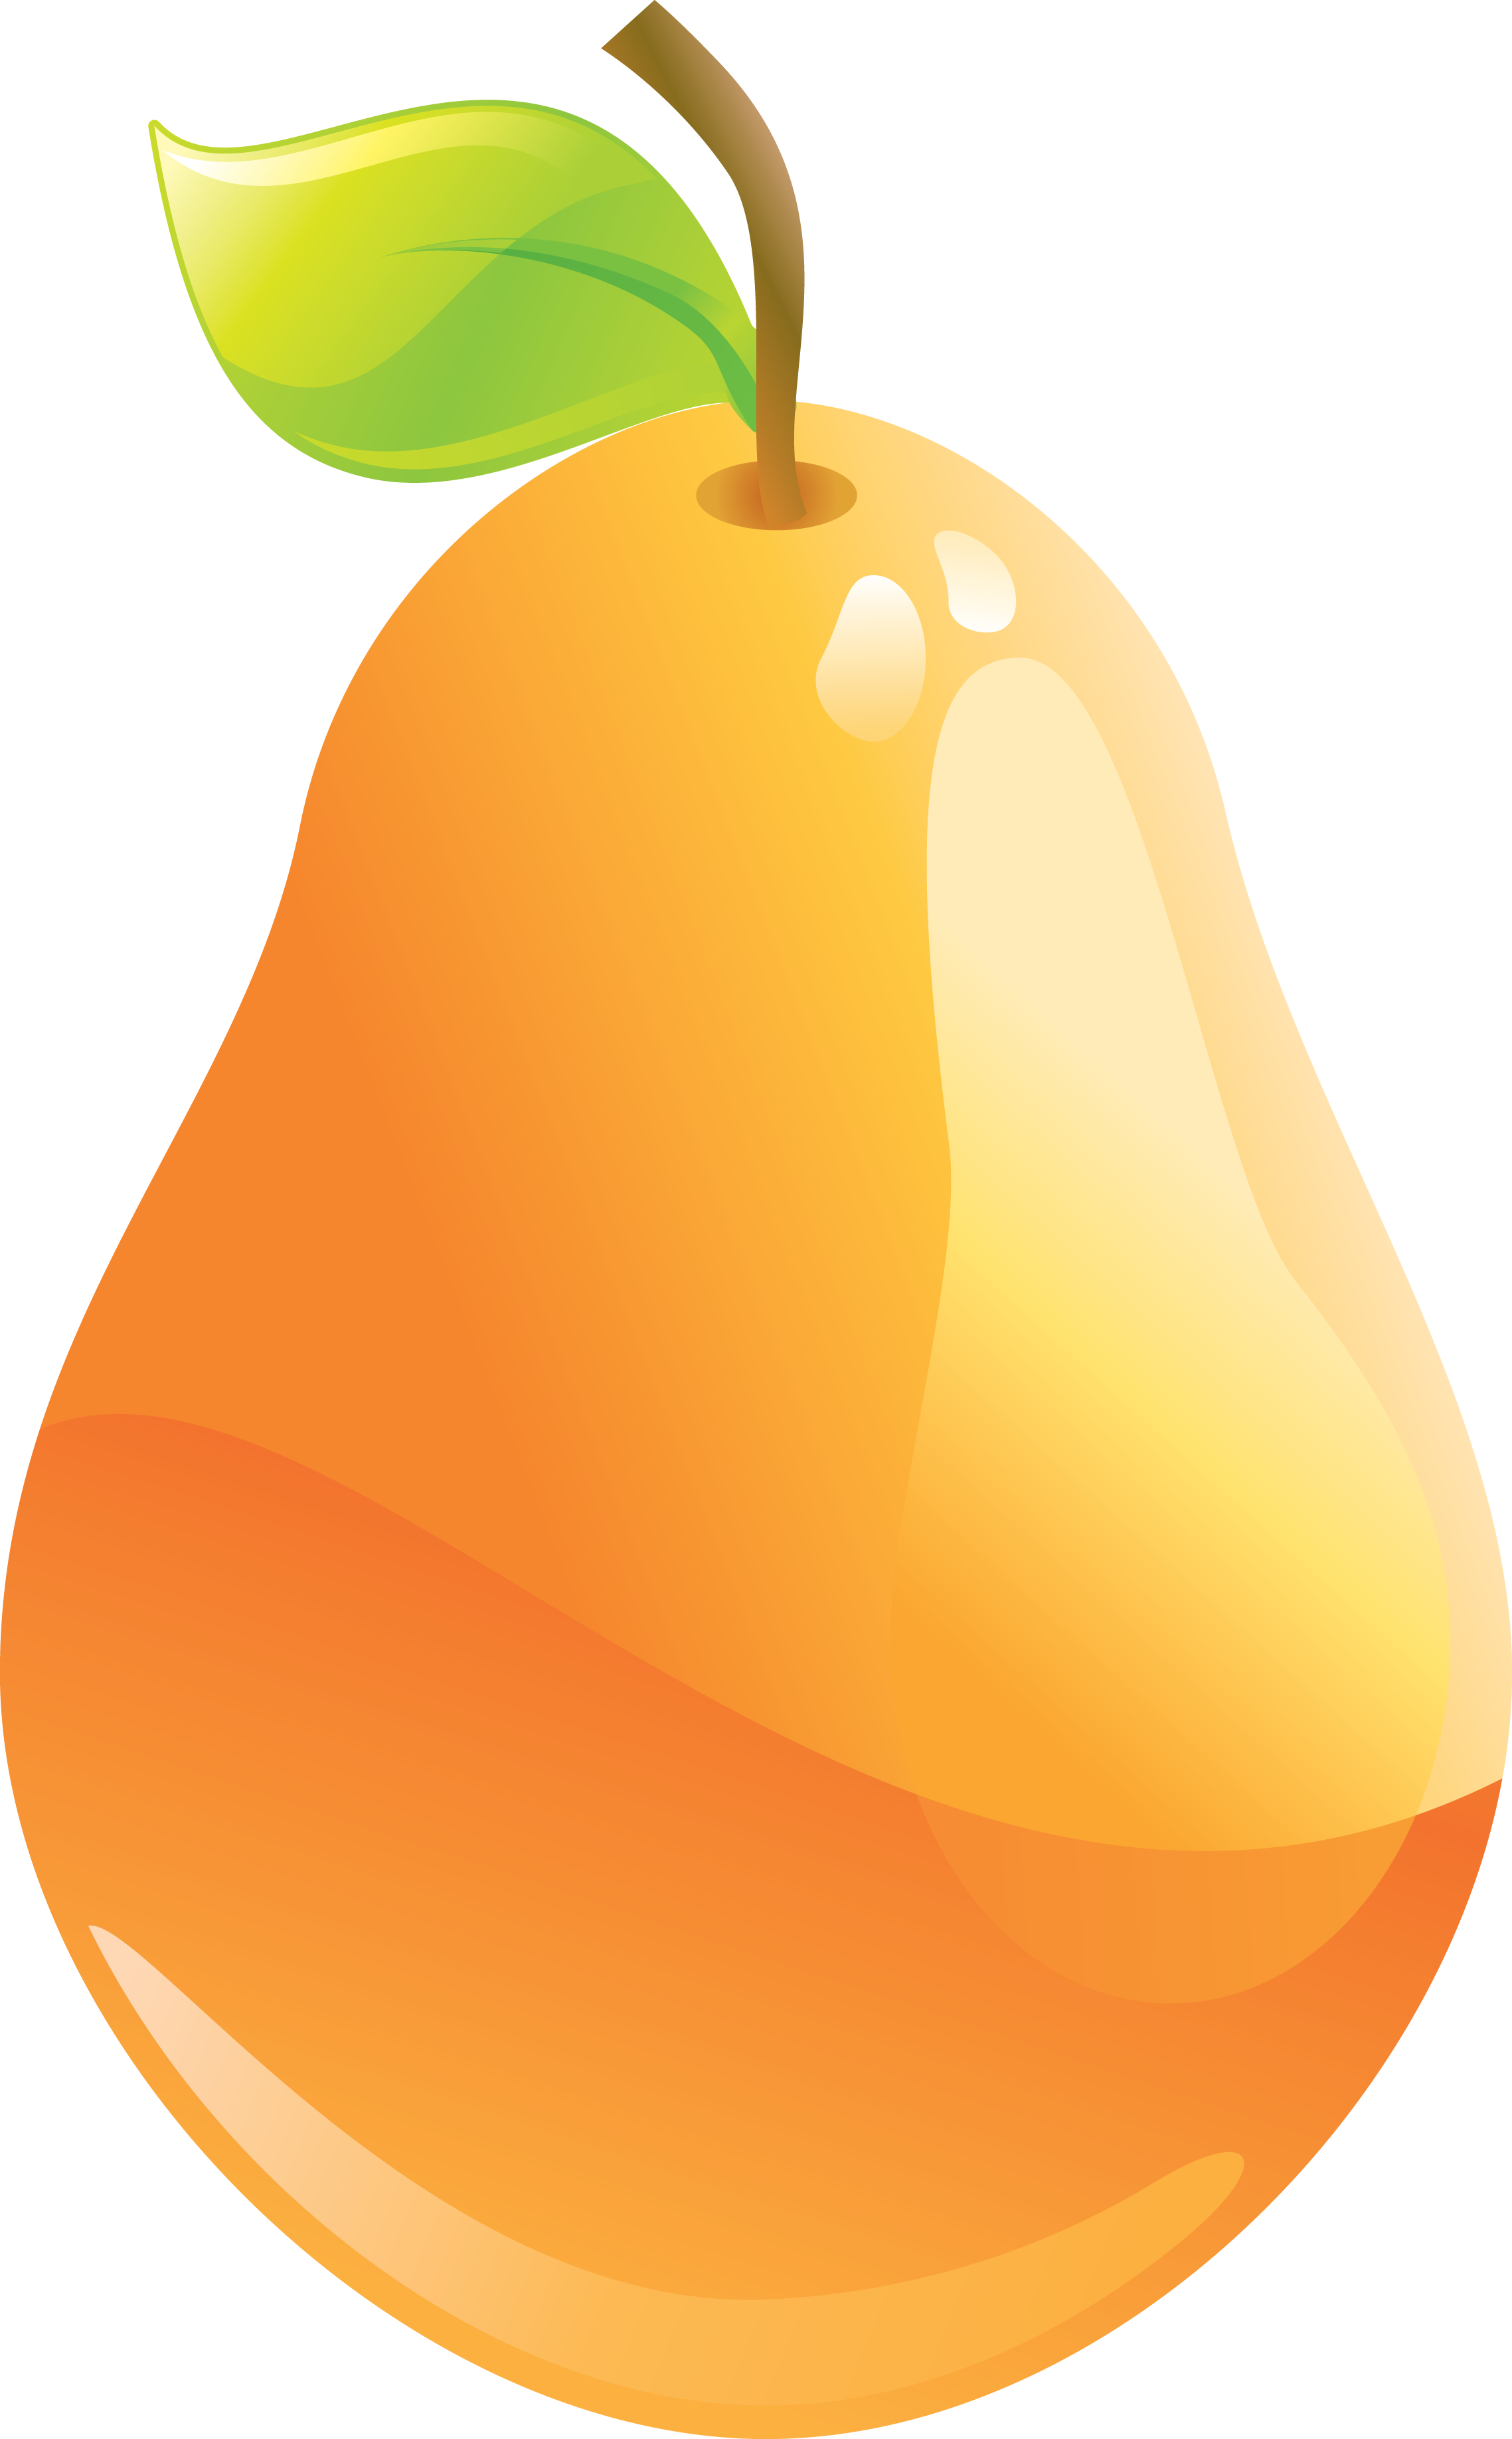 Pin by next on. Pear clipart yellow pear